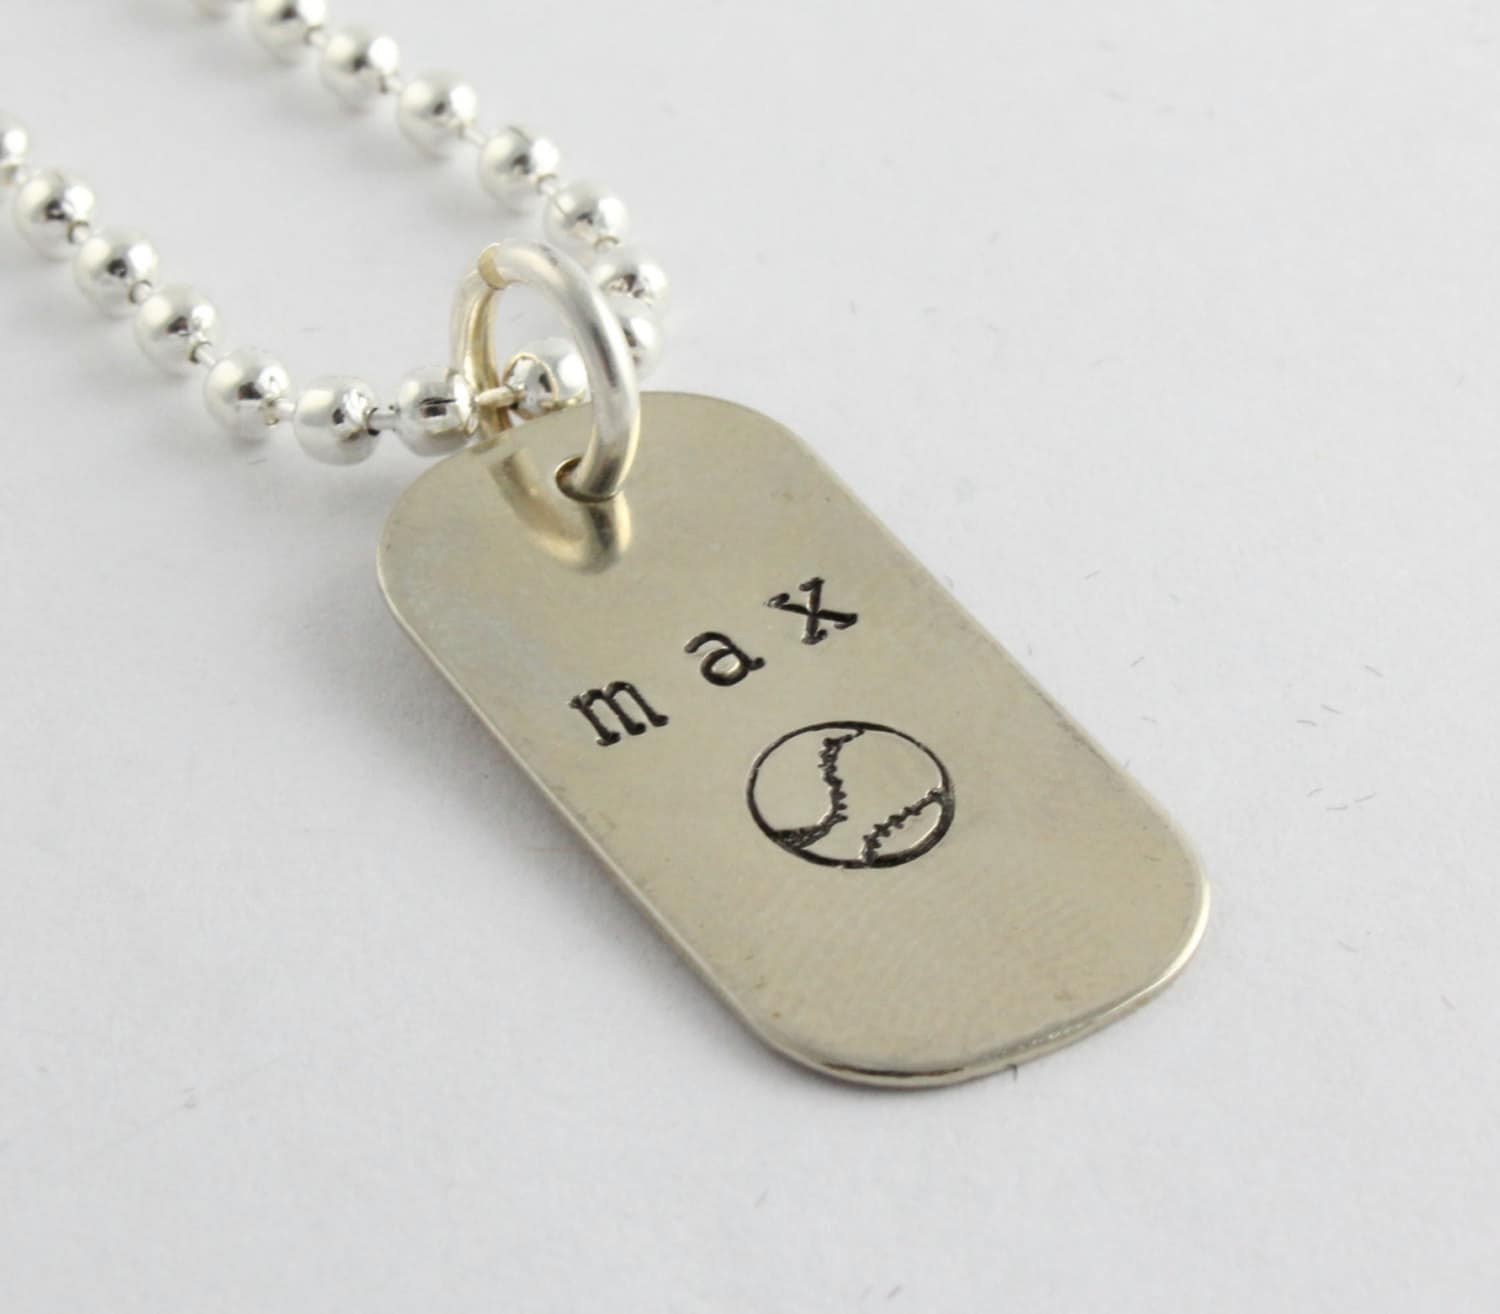 ashes dog personalised tag locket necklace lockets prints leave paw dogs